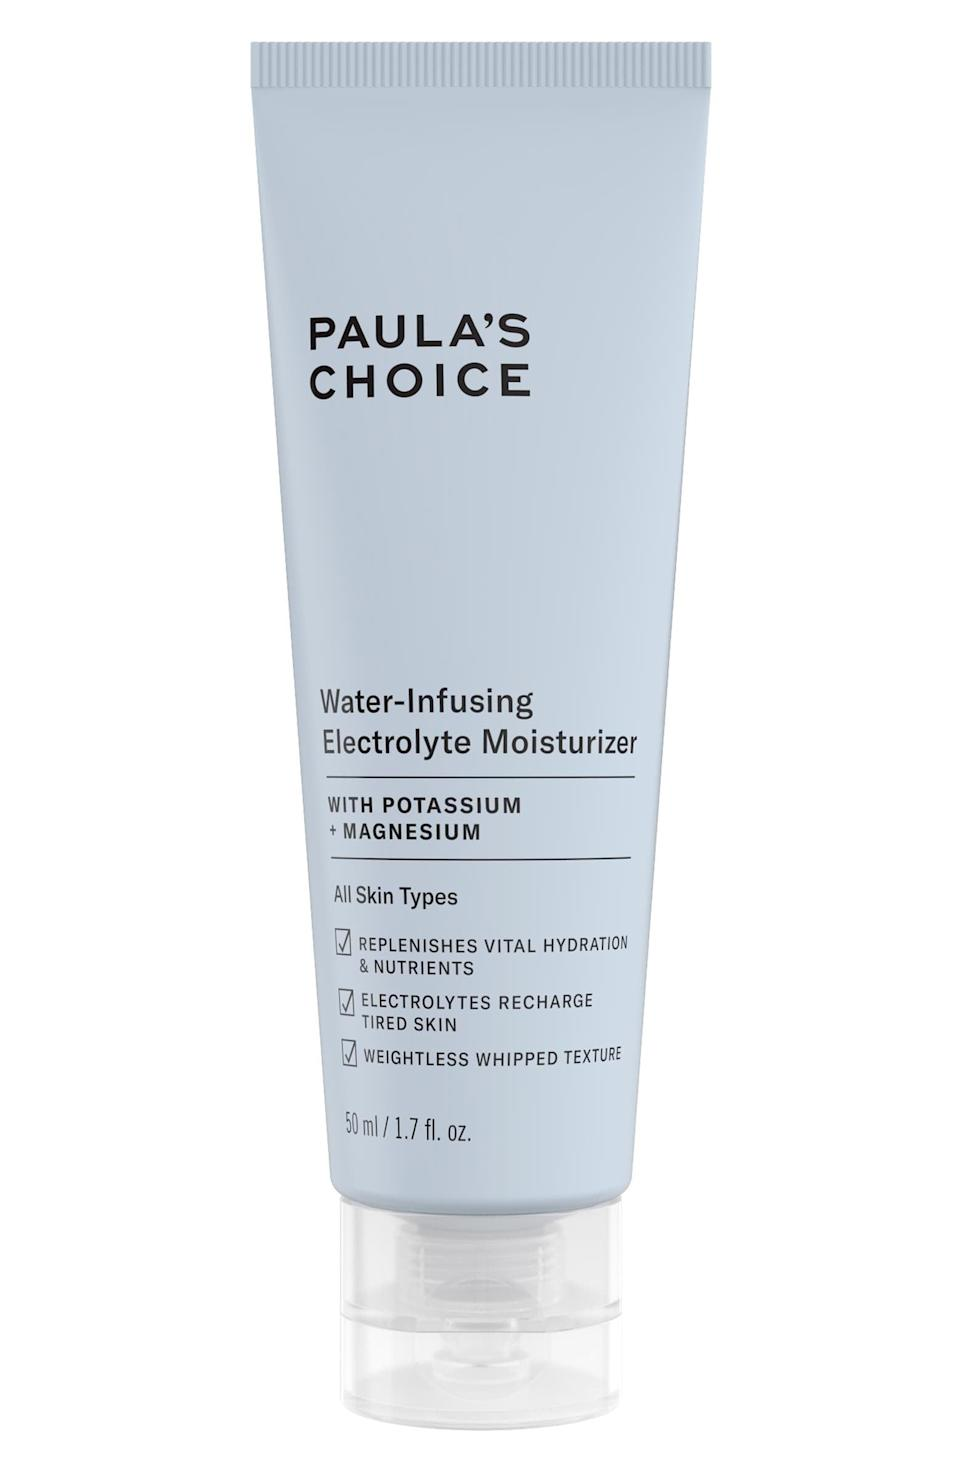 "<p>A personal favorite of several POPSUGAR editors (especially during the warmer months since it's supremely lightweight), the <span>Paula's Choice Water-Infusing Electrolyte Moisturizer</span> ($35) also has a few makeup artist fans. ""I love Paula's Choice skincare all around,"" said makeup artist Quinn Murphy, who works with loads of celebrities including Lily Aldridge, Nathalie Emmanuel, Sophie Turner, Sofia Vergara, <a class=""link rapid-noclick-resp"" href=""https://www.popsugar.co.uk/Alison-Brie"" rel=""nofollow noopener"" target=""_blank"" data-ylk=""slk:Alison Brie"">Alison Brie</a>, and Gemma Chan, to name a few. ""Before applying your base, I suggest using the Water Infusing Electrolyte Moisturizer because it's not greasy, so it layers well under makeup. It's also safe for blemish-prone skin but still gives your skin a healthy and dewy finish.""</p>"